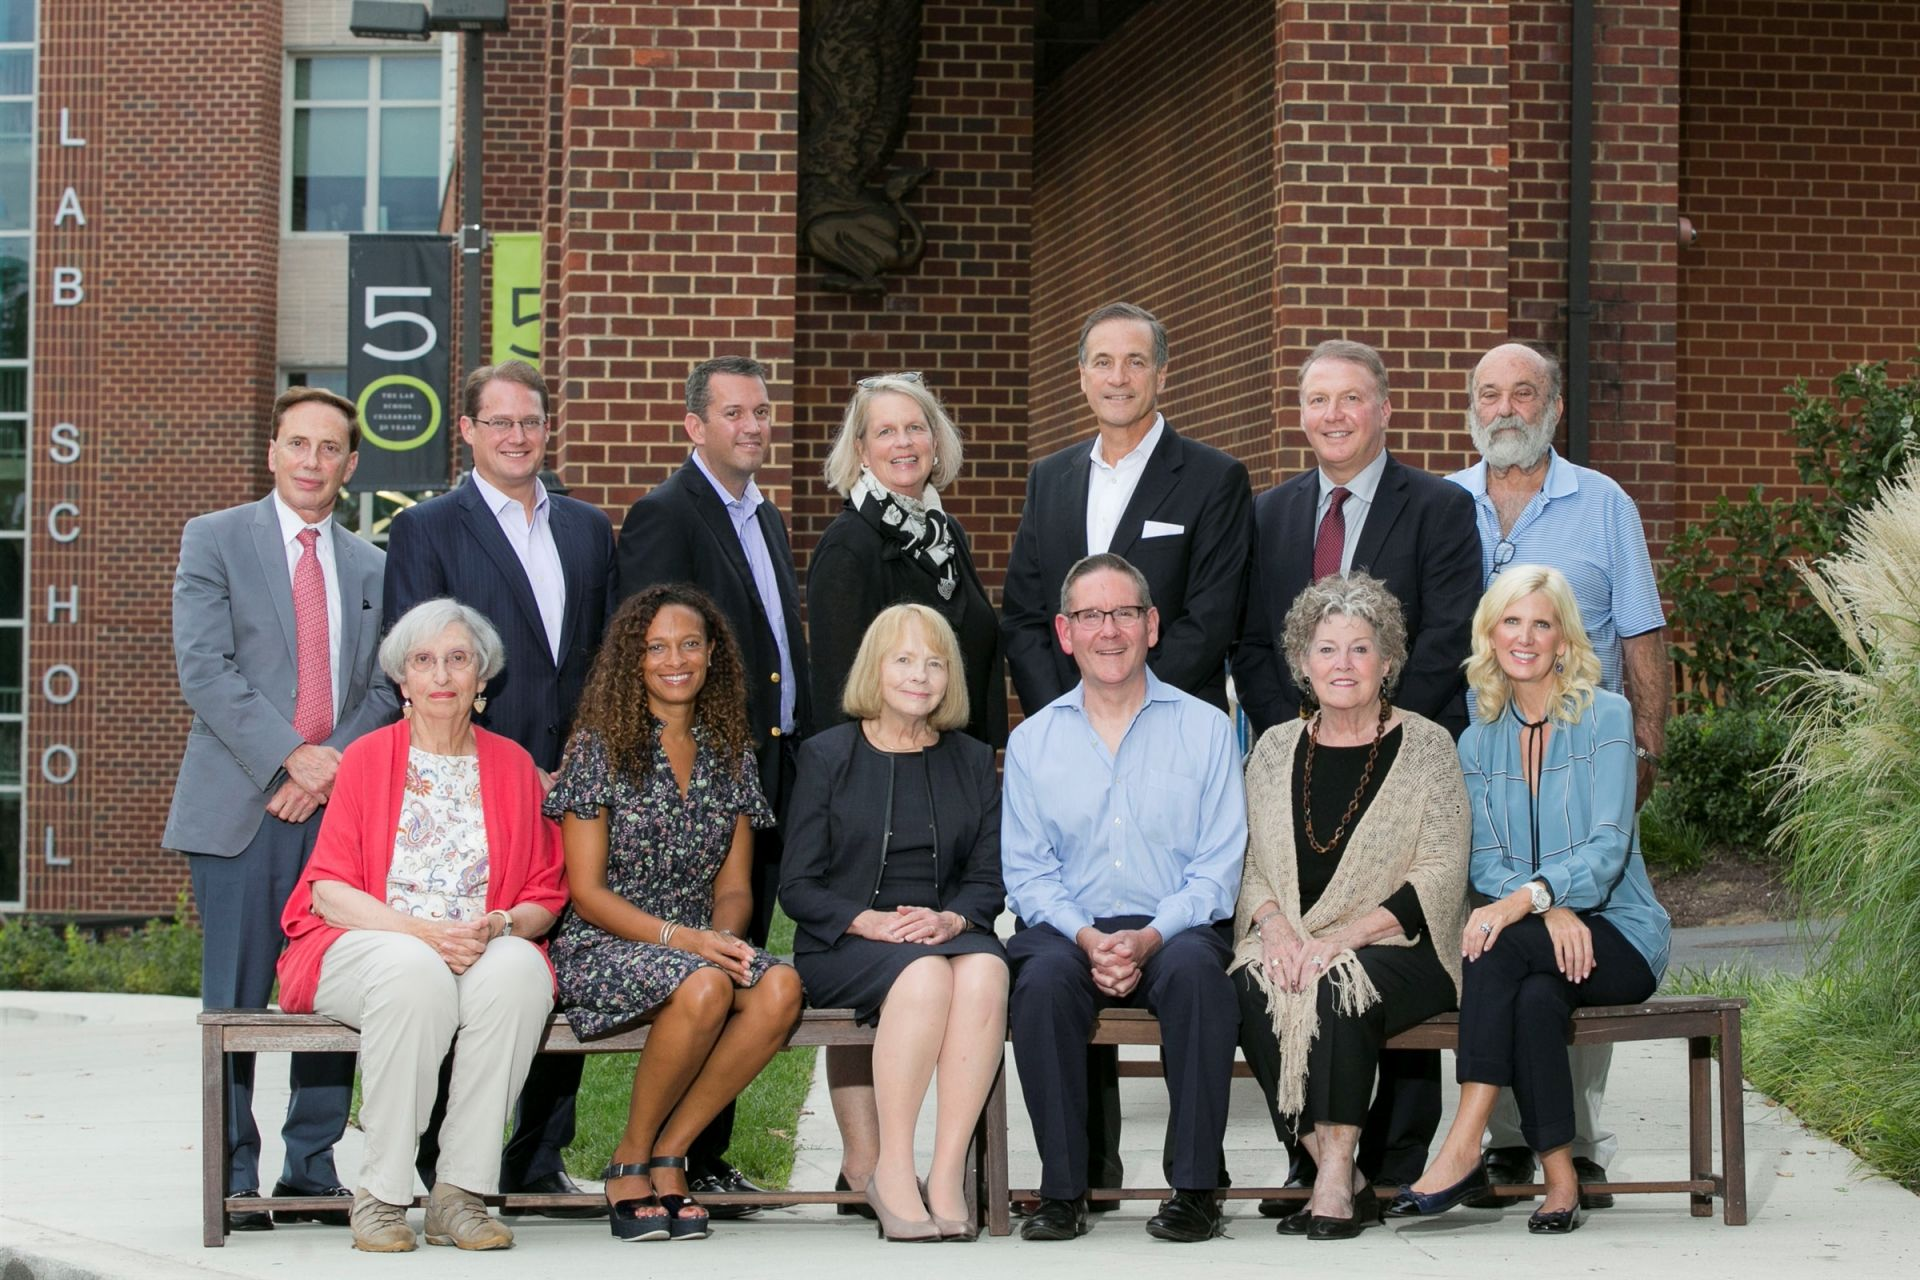 Top, left to right: John Jonas, Mac Bernstein, Mike Beach, Susan Hutton, Bill Tennis, Mike Tongour, Allyn Kilsheimer. Bottom, left to right: Martha Denckla, Lori Soto, Katherine Schantz, Hal Malchow, Mimi Dawson, Ashley Dabbiere  Missing: Patty Brown, Nancy Bubes, Davi Camalier, Art Coleman, Sheila Feinberg, Linda Fisher, Kate Fulton, Leah Gambal, Brian Thompson, Ryan Wade